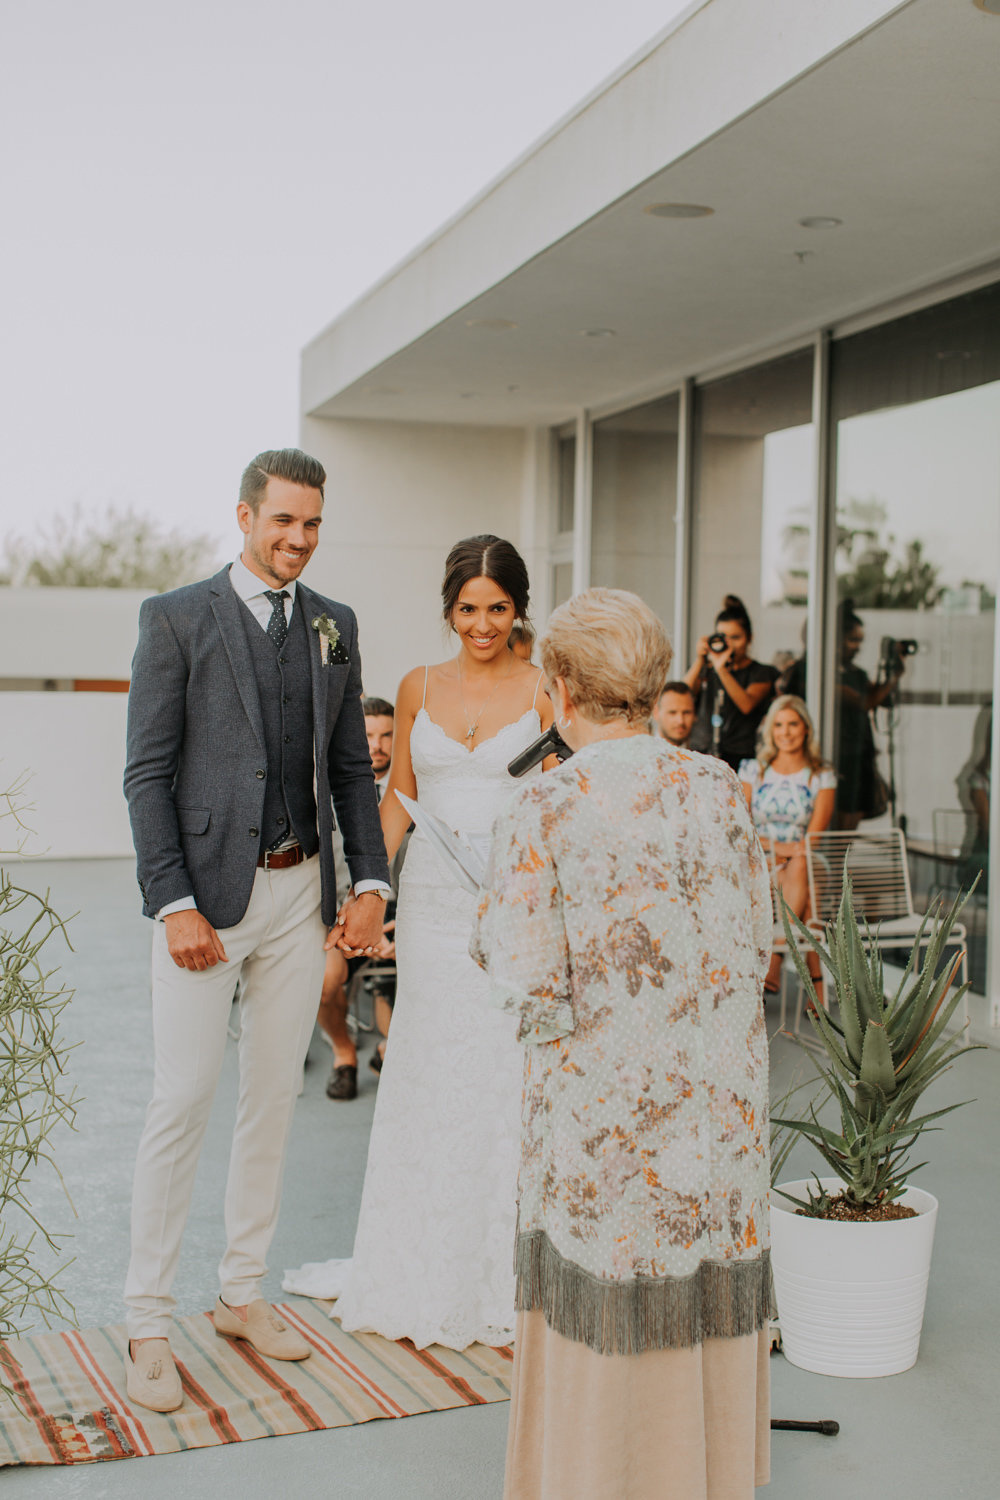 Brianna Broyles_Palm Springs Wedding Photographer_Ace Hotel Wedding_Ace Hotel Palm Springs-47